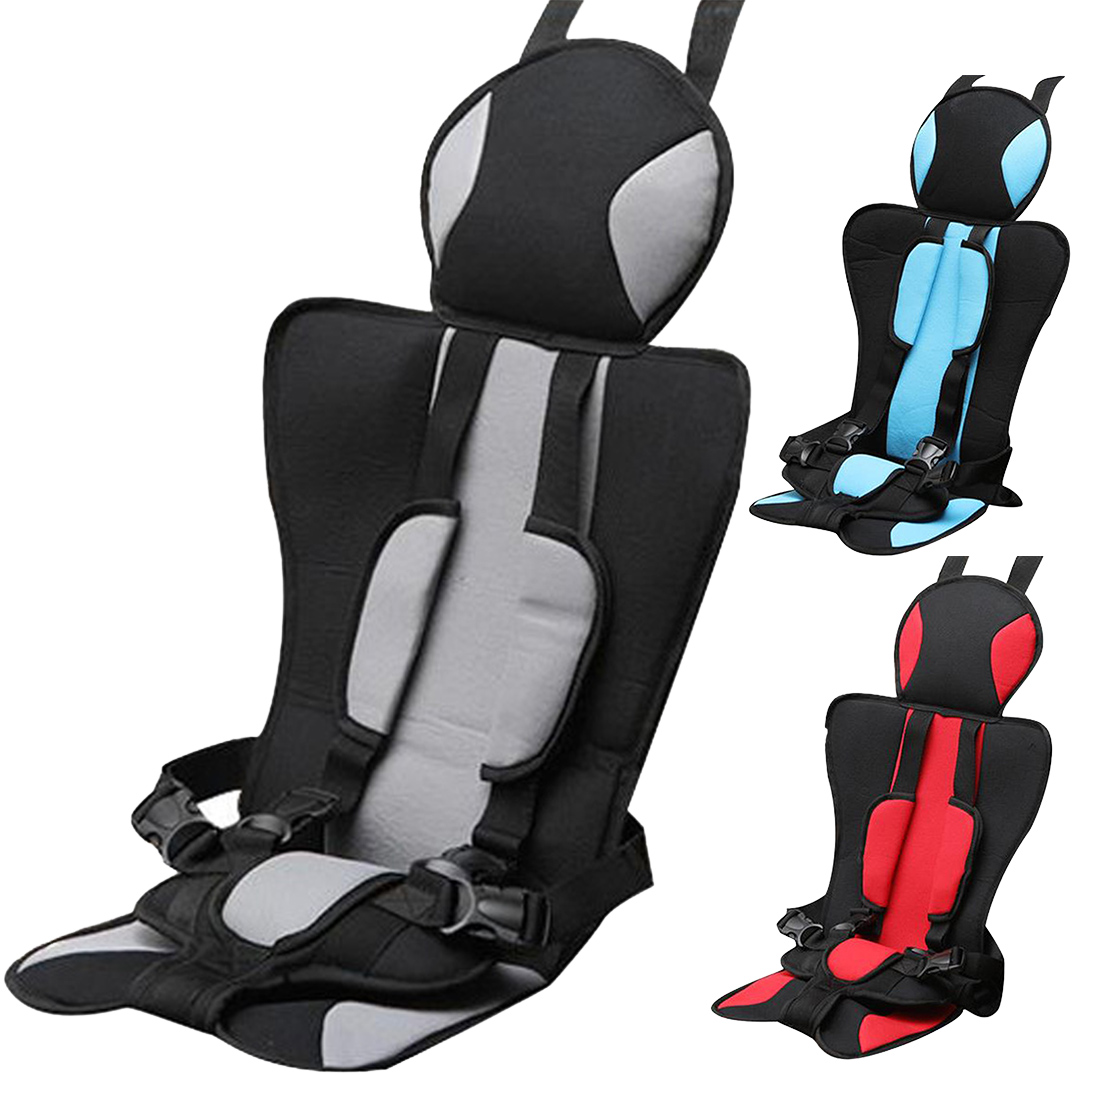 Dewtreetali Adjustable Baby Car Seat For 6 Months 5 Years Old Safe Toddler Booster Child Seats Potable Chai In Automobiles Covers